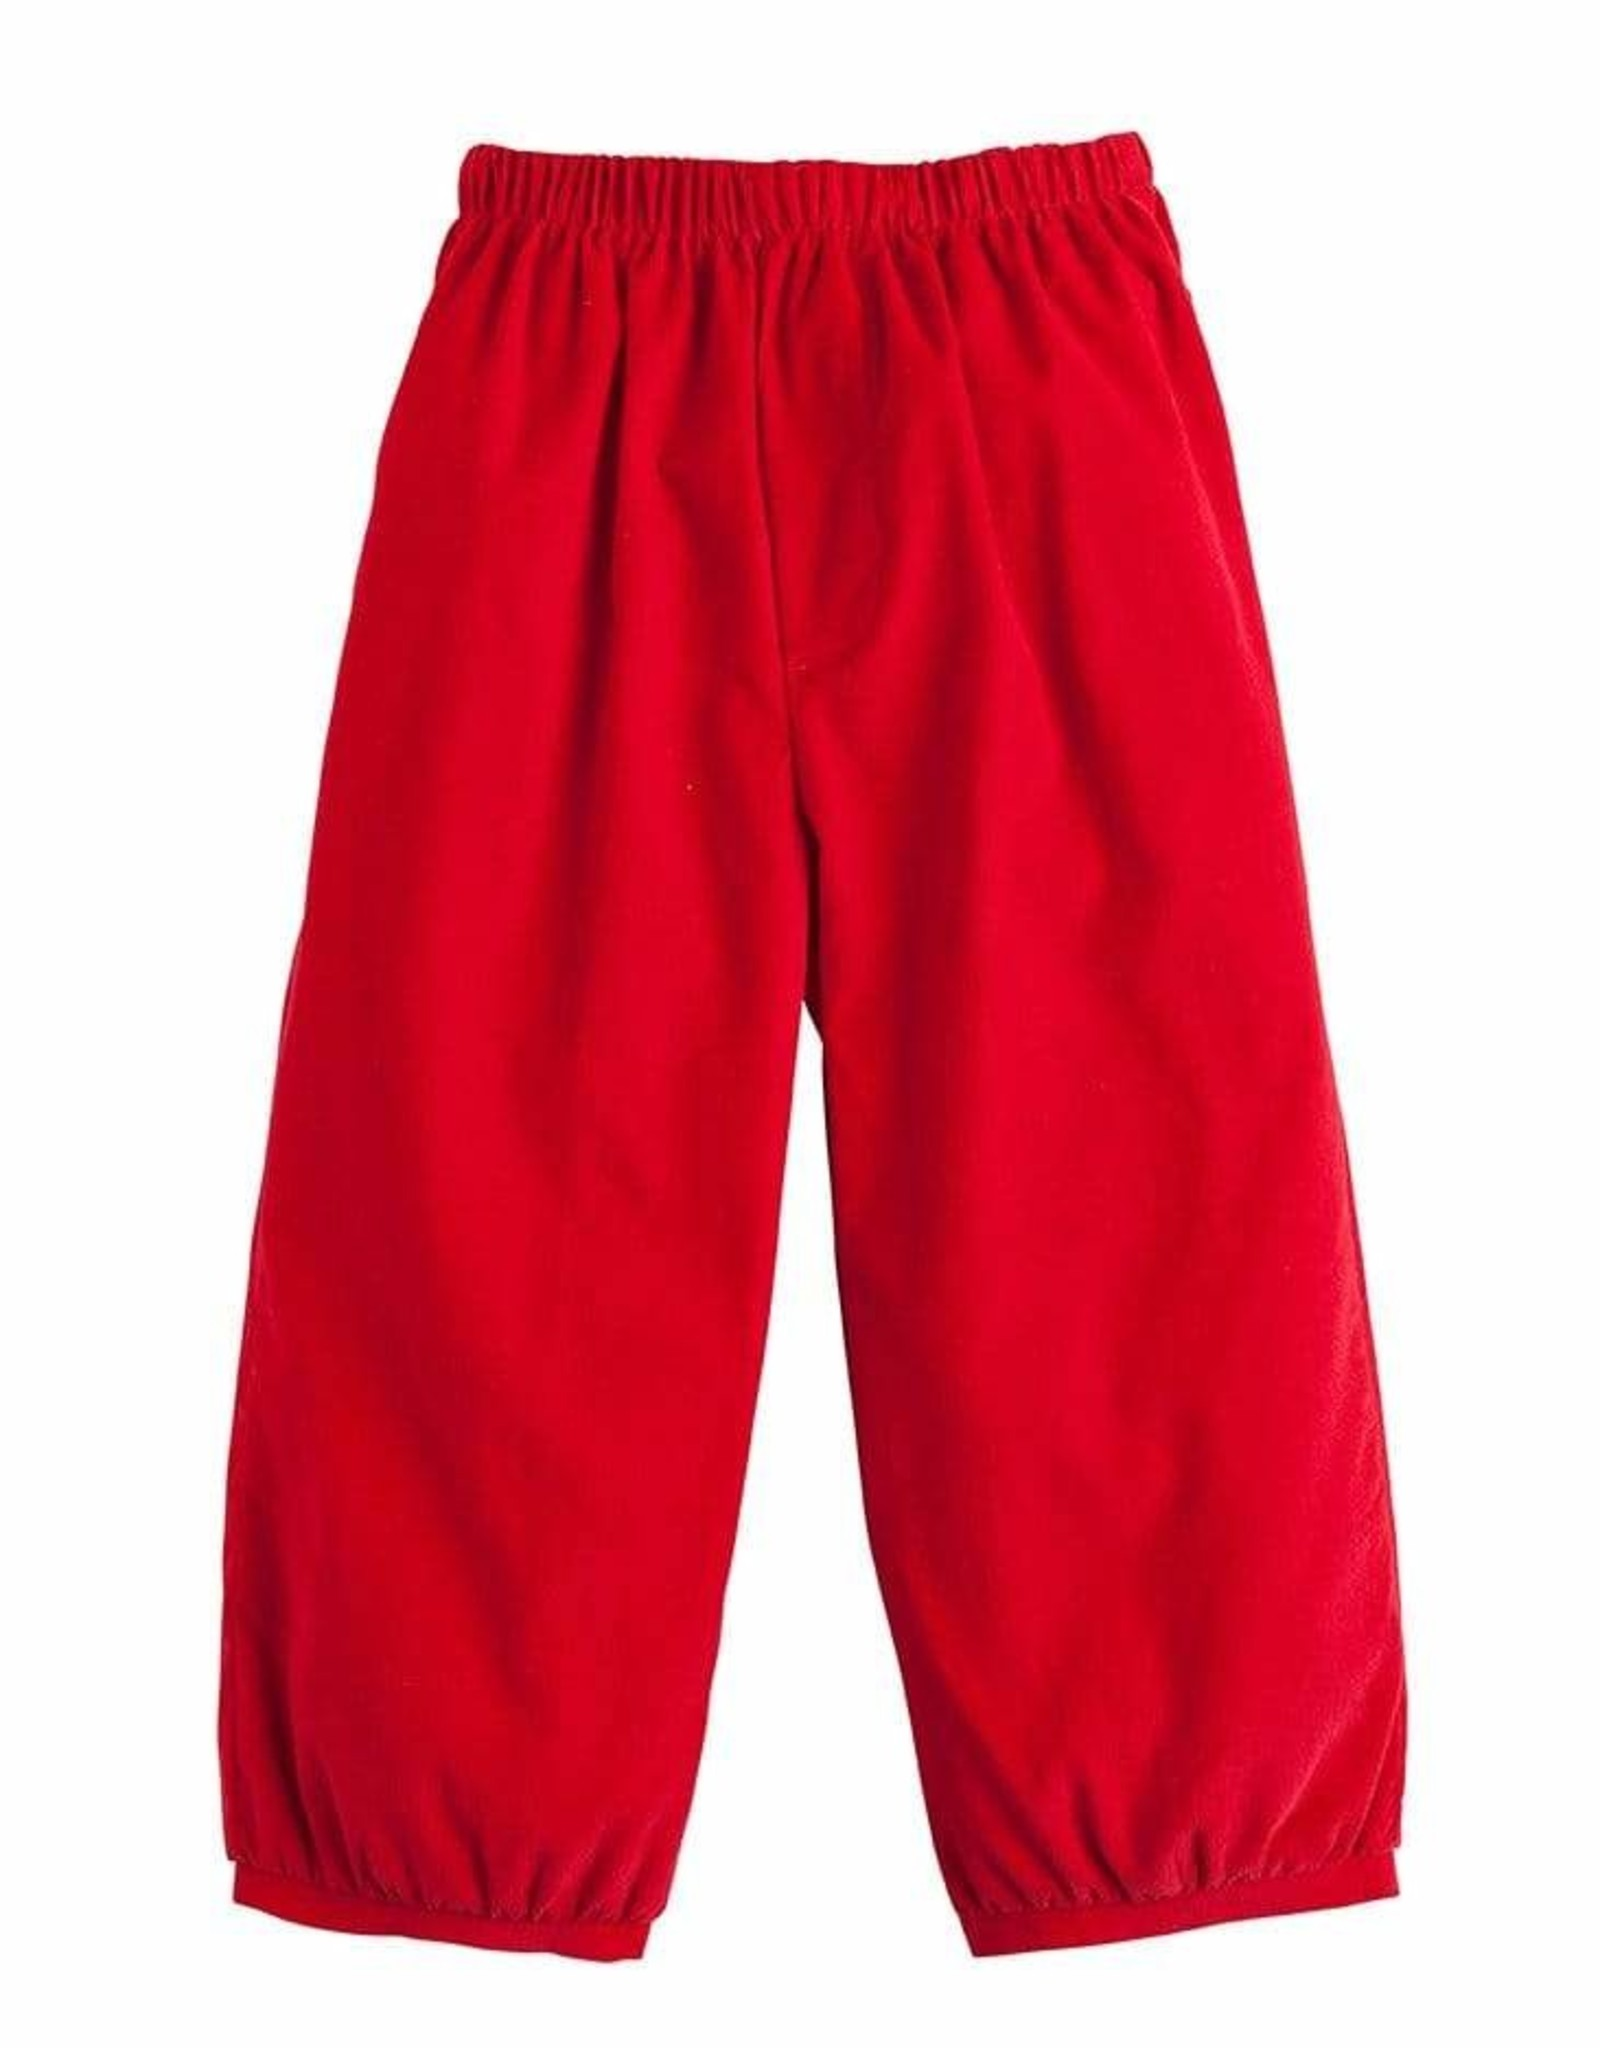 Little English Banded Pull On Pant - Red Corduroy